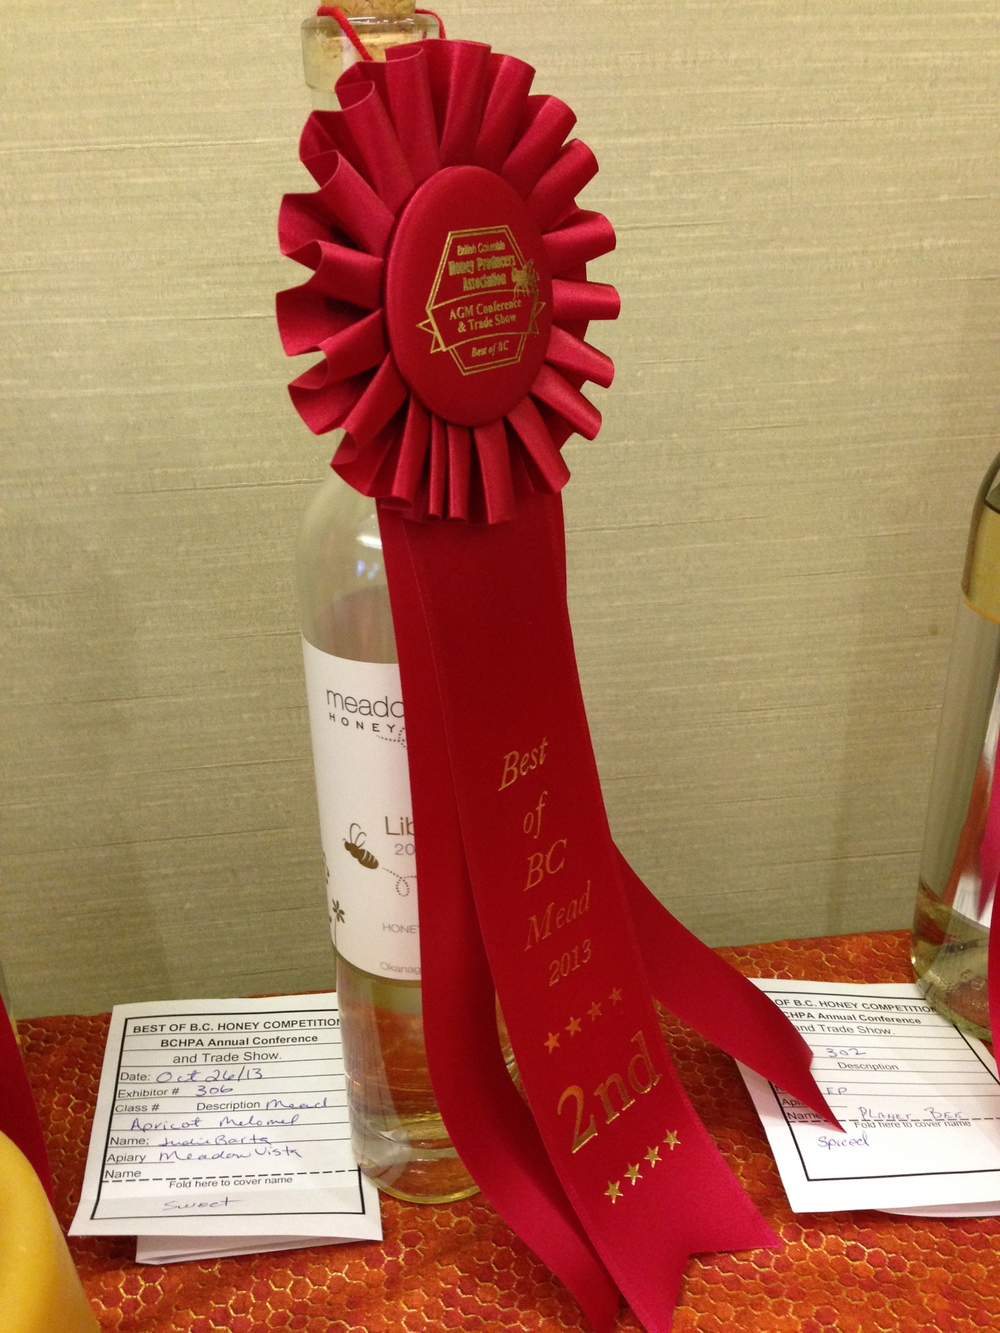 Libra wins 2nd place at BC Beekeeper's Assoc. AGM!